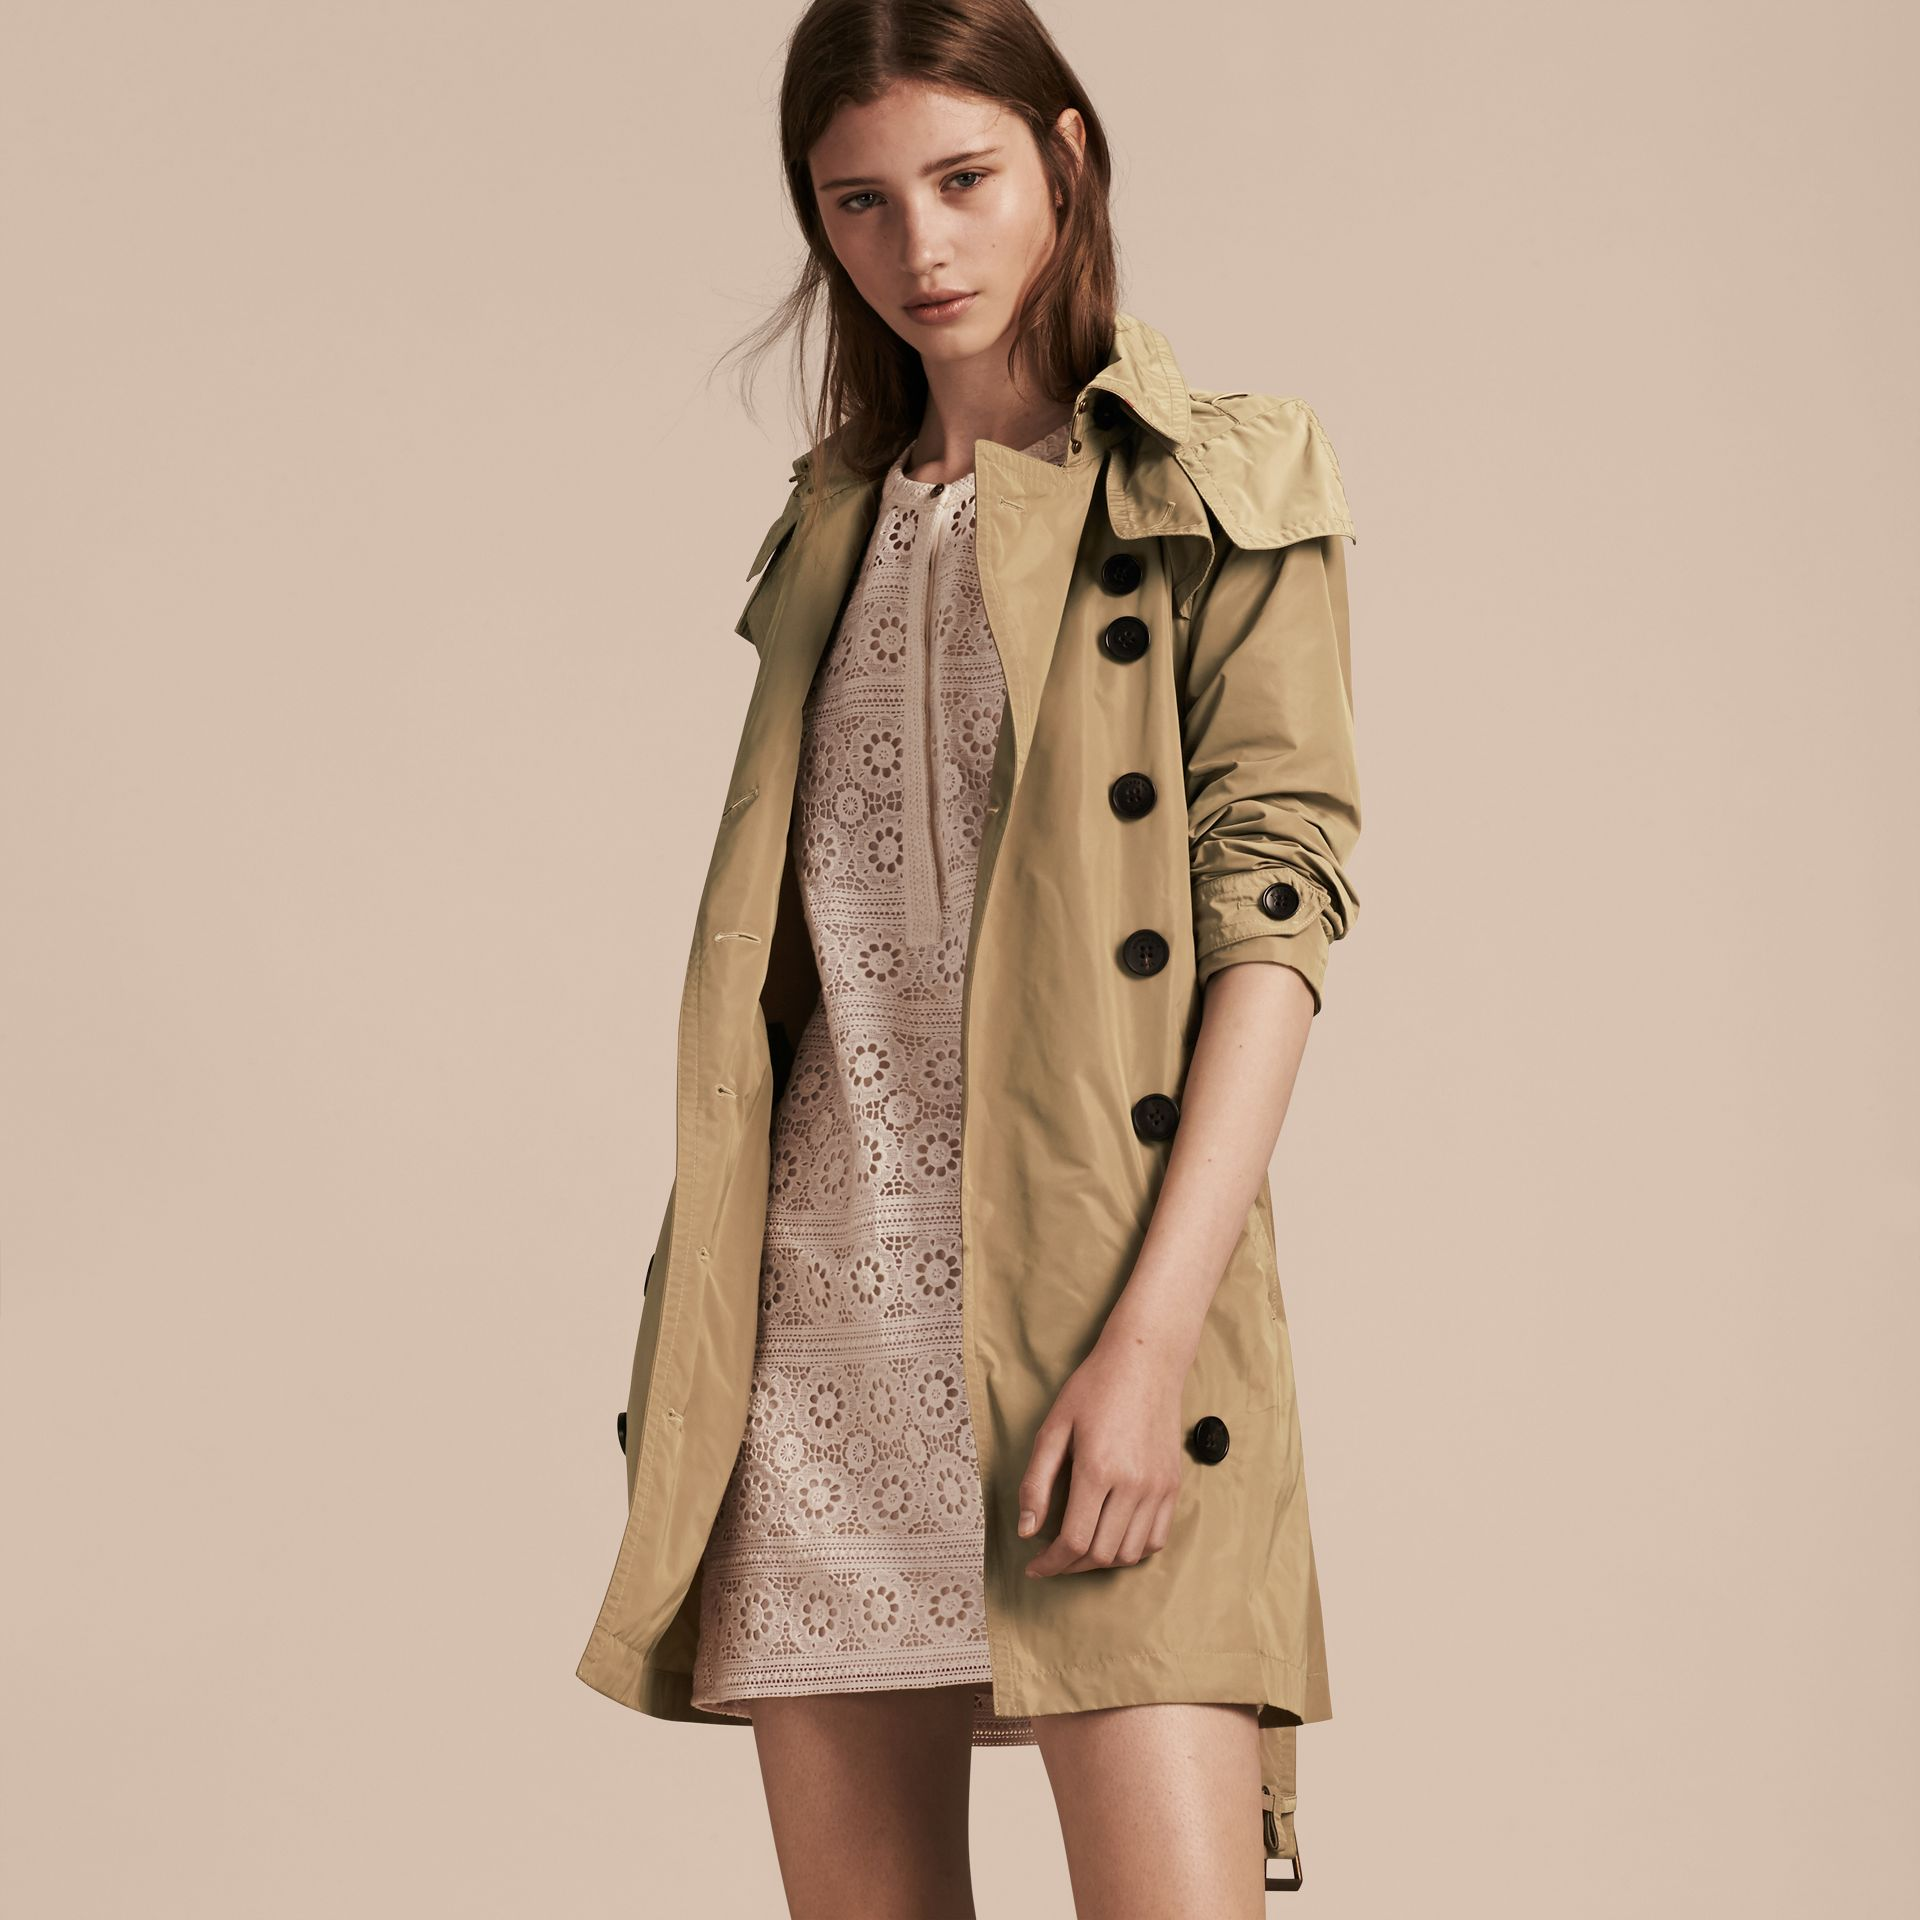 Taffeta Trench Coat with Detachable Hood in Sisal - Women | Burberry - gallery image 7